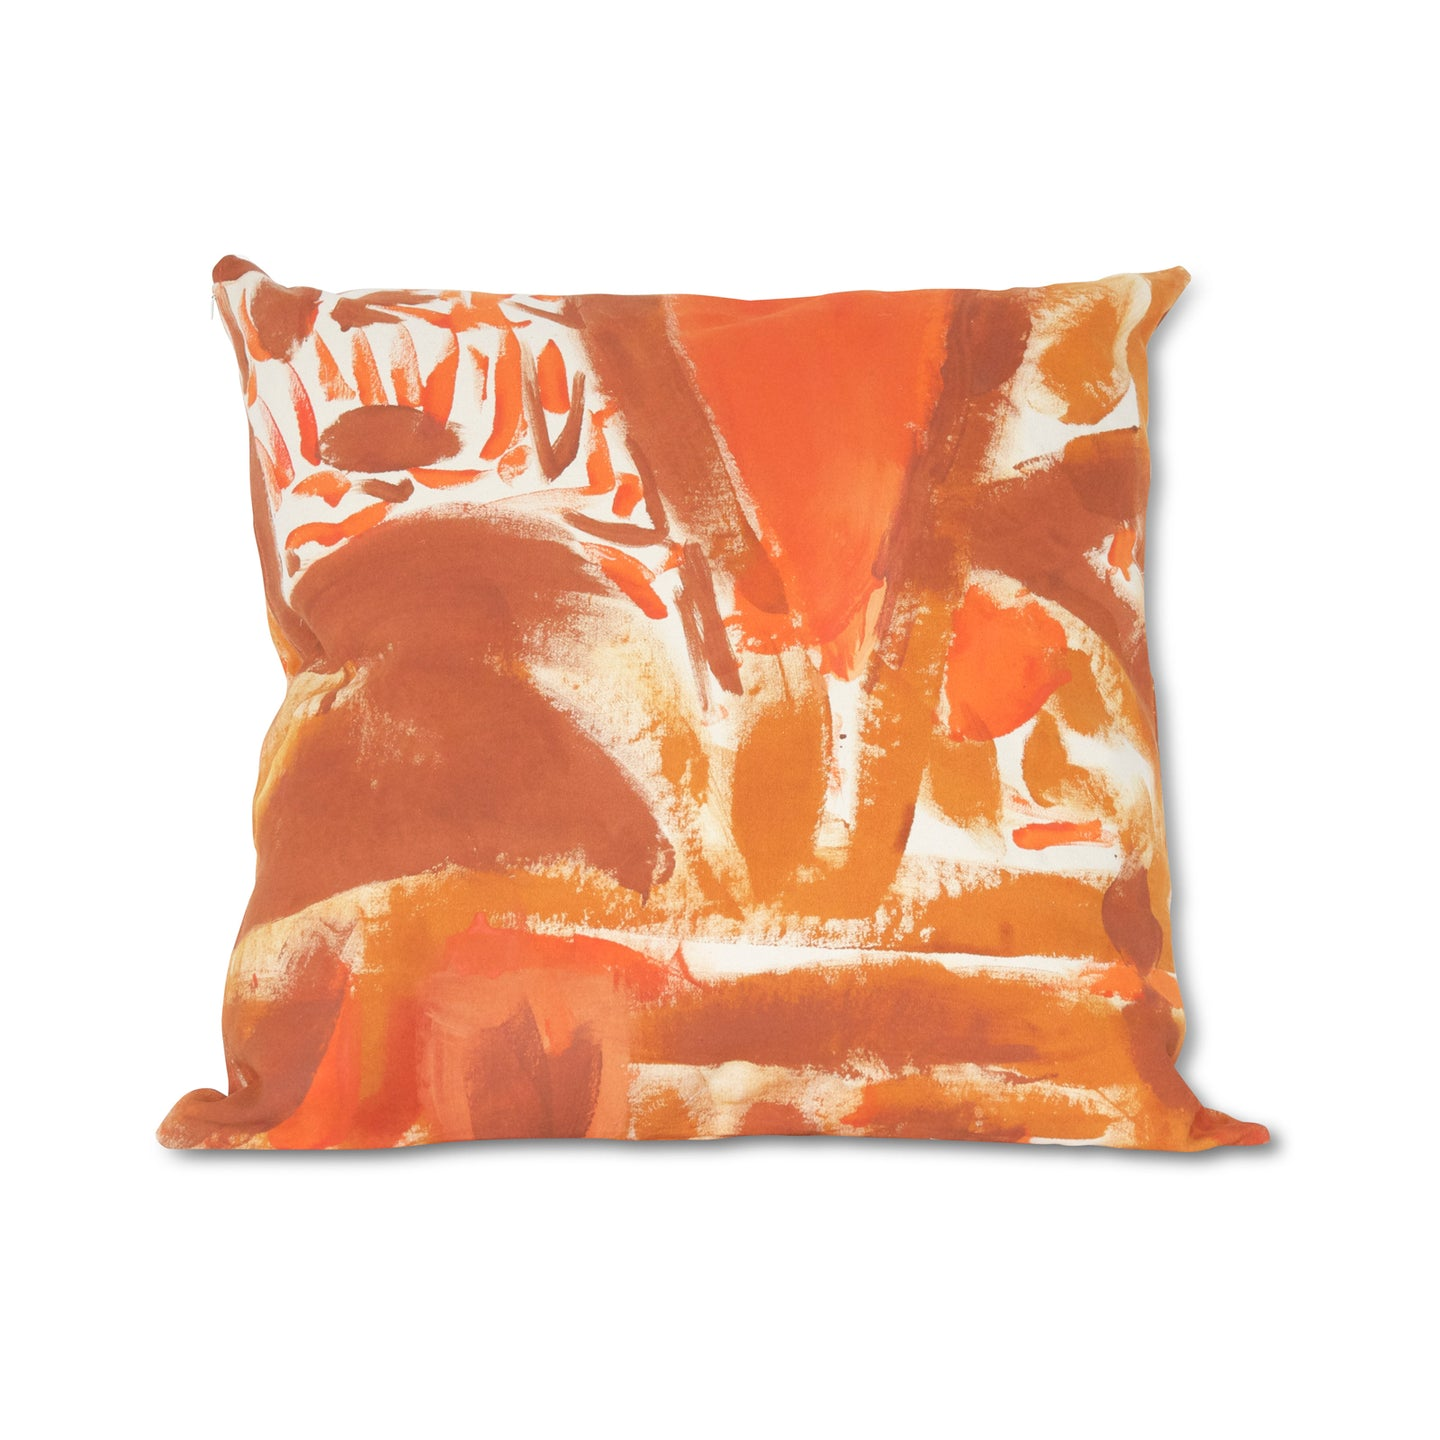 Rust Hand-Painted Two Hue Canvas Floor Cushion